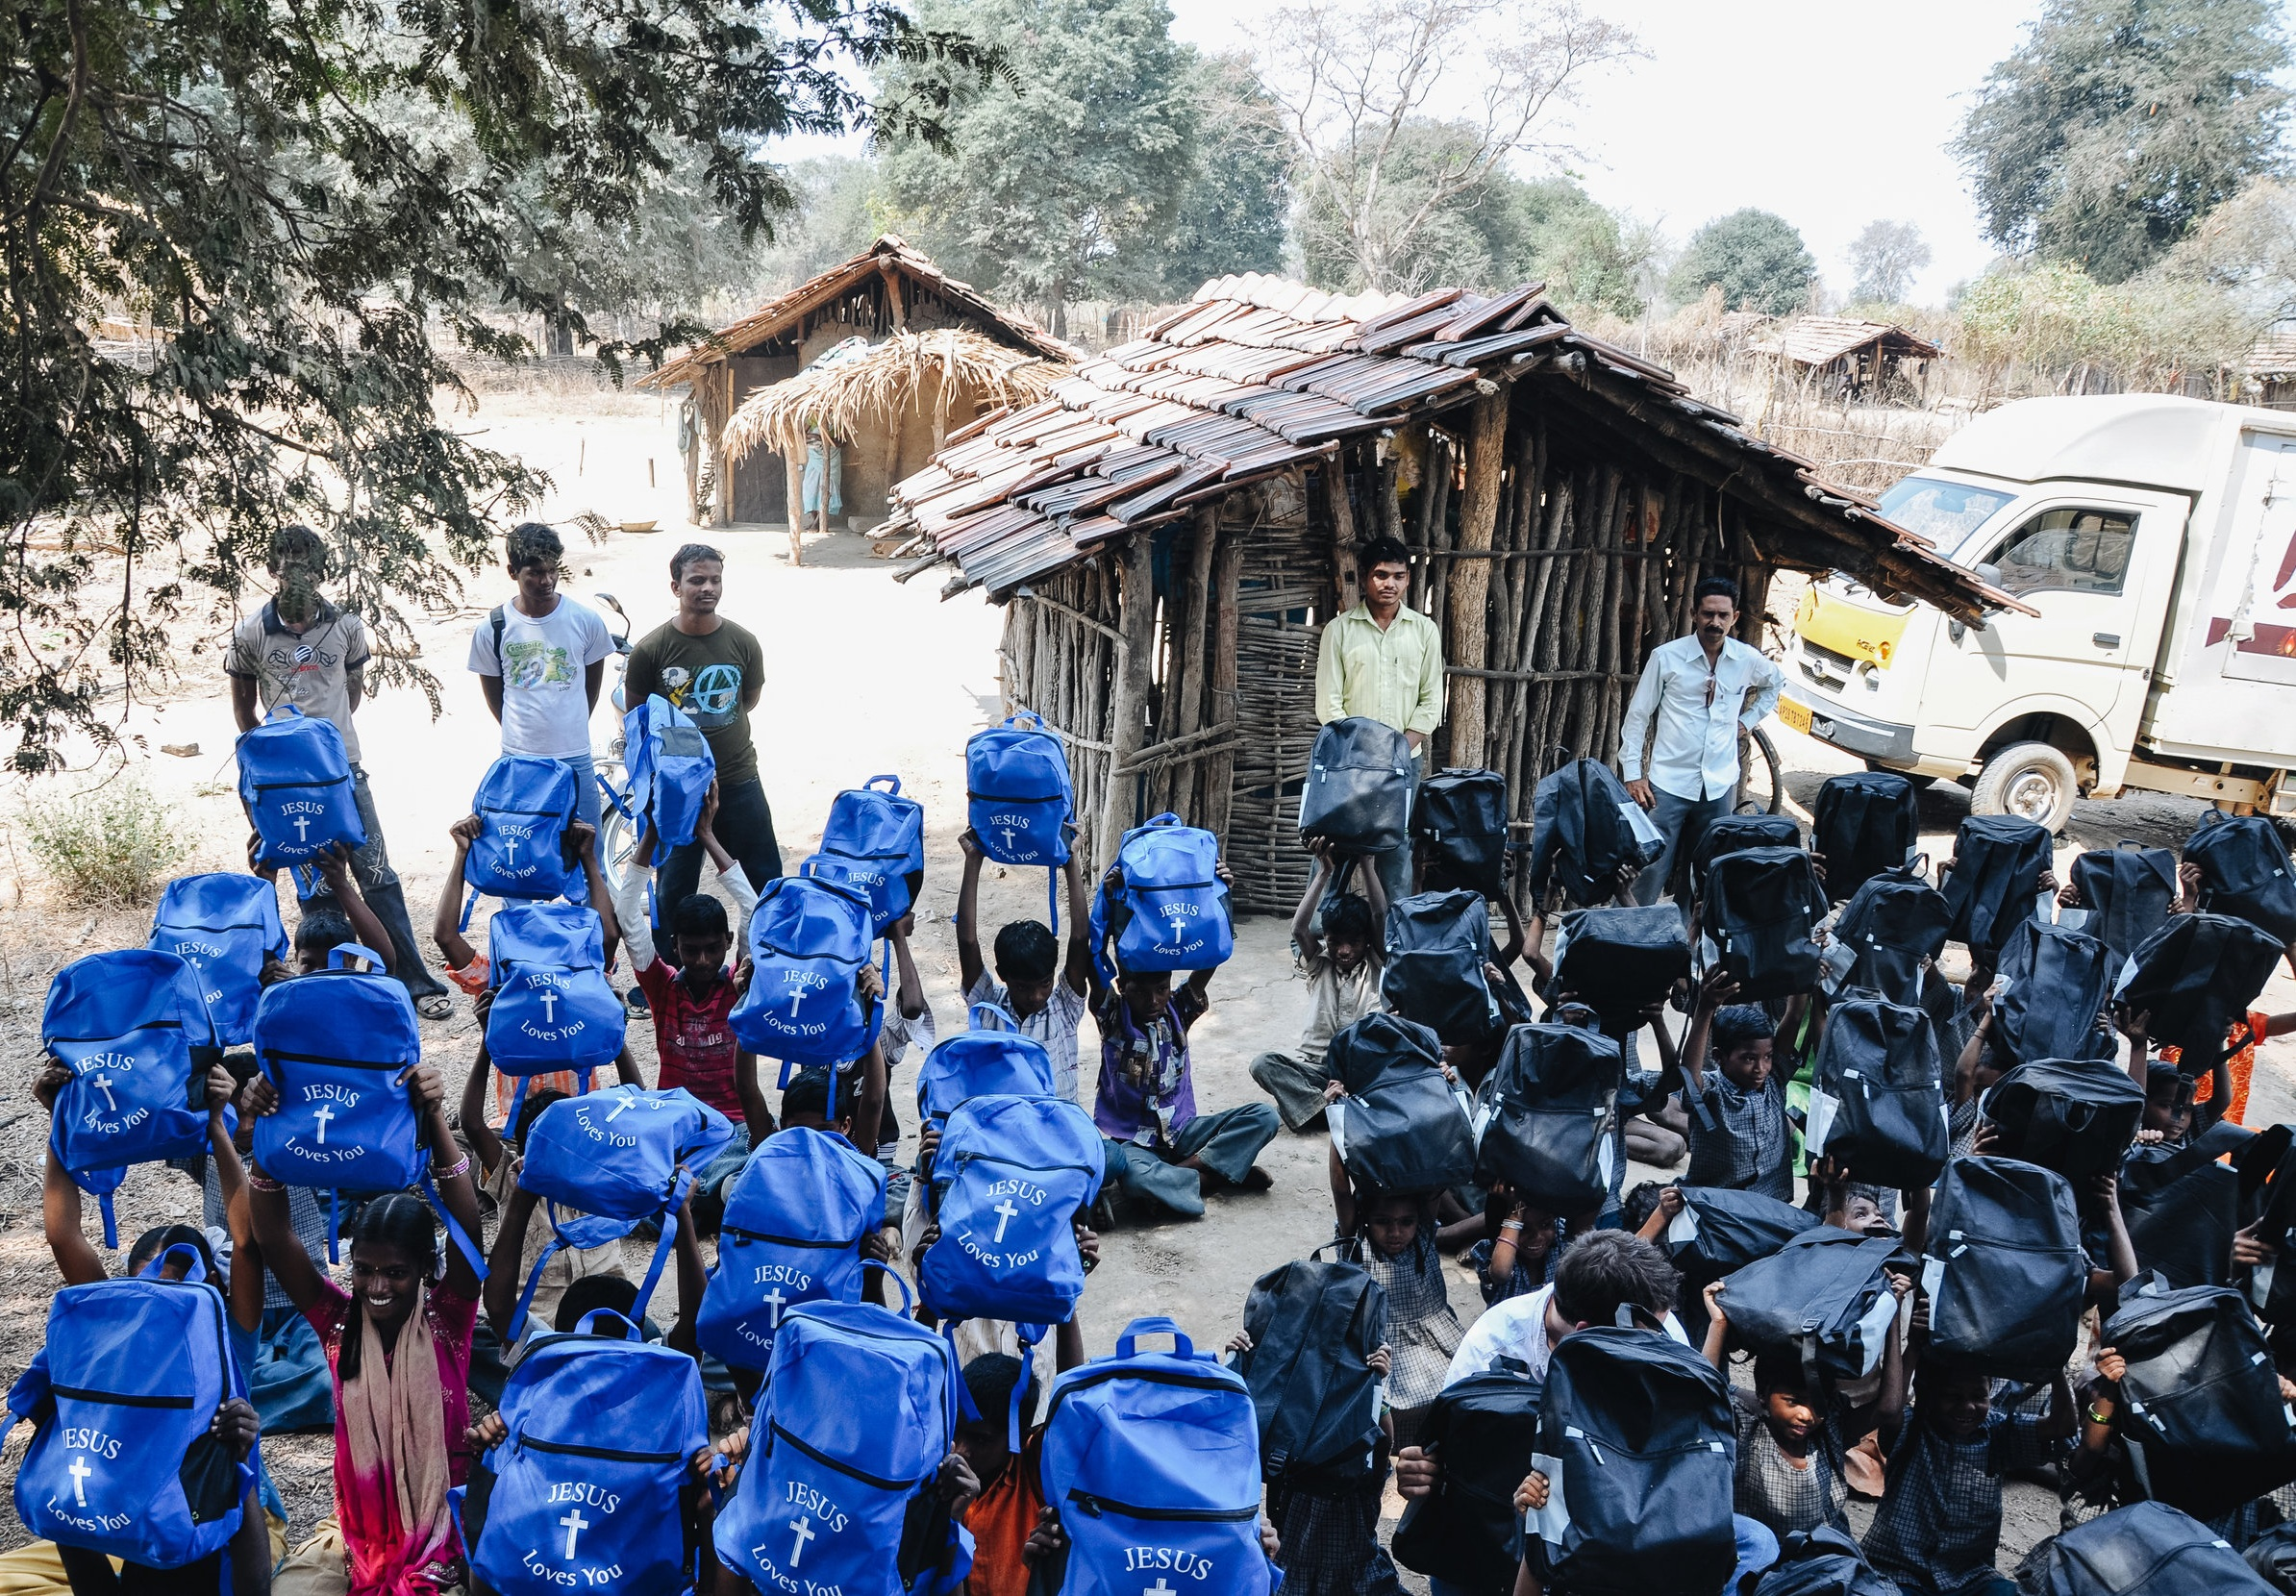 Project 15 Update: 5/9/19 - Our awesome team in India is busy preparing everything for the huge distribution of 2,000 book bags this month. eMite will be traveling to Bhadrachalam, Manuguru, and Mancherial. These rural villages are within 5 hours drive of Hyderabad and the need is great. In each location we will be distributing book bags full of educational supplies so children can attend school and receive an education. Join us today! #GiveYourMite- eMite Team